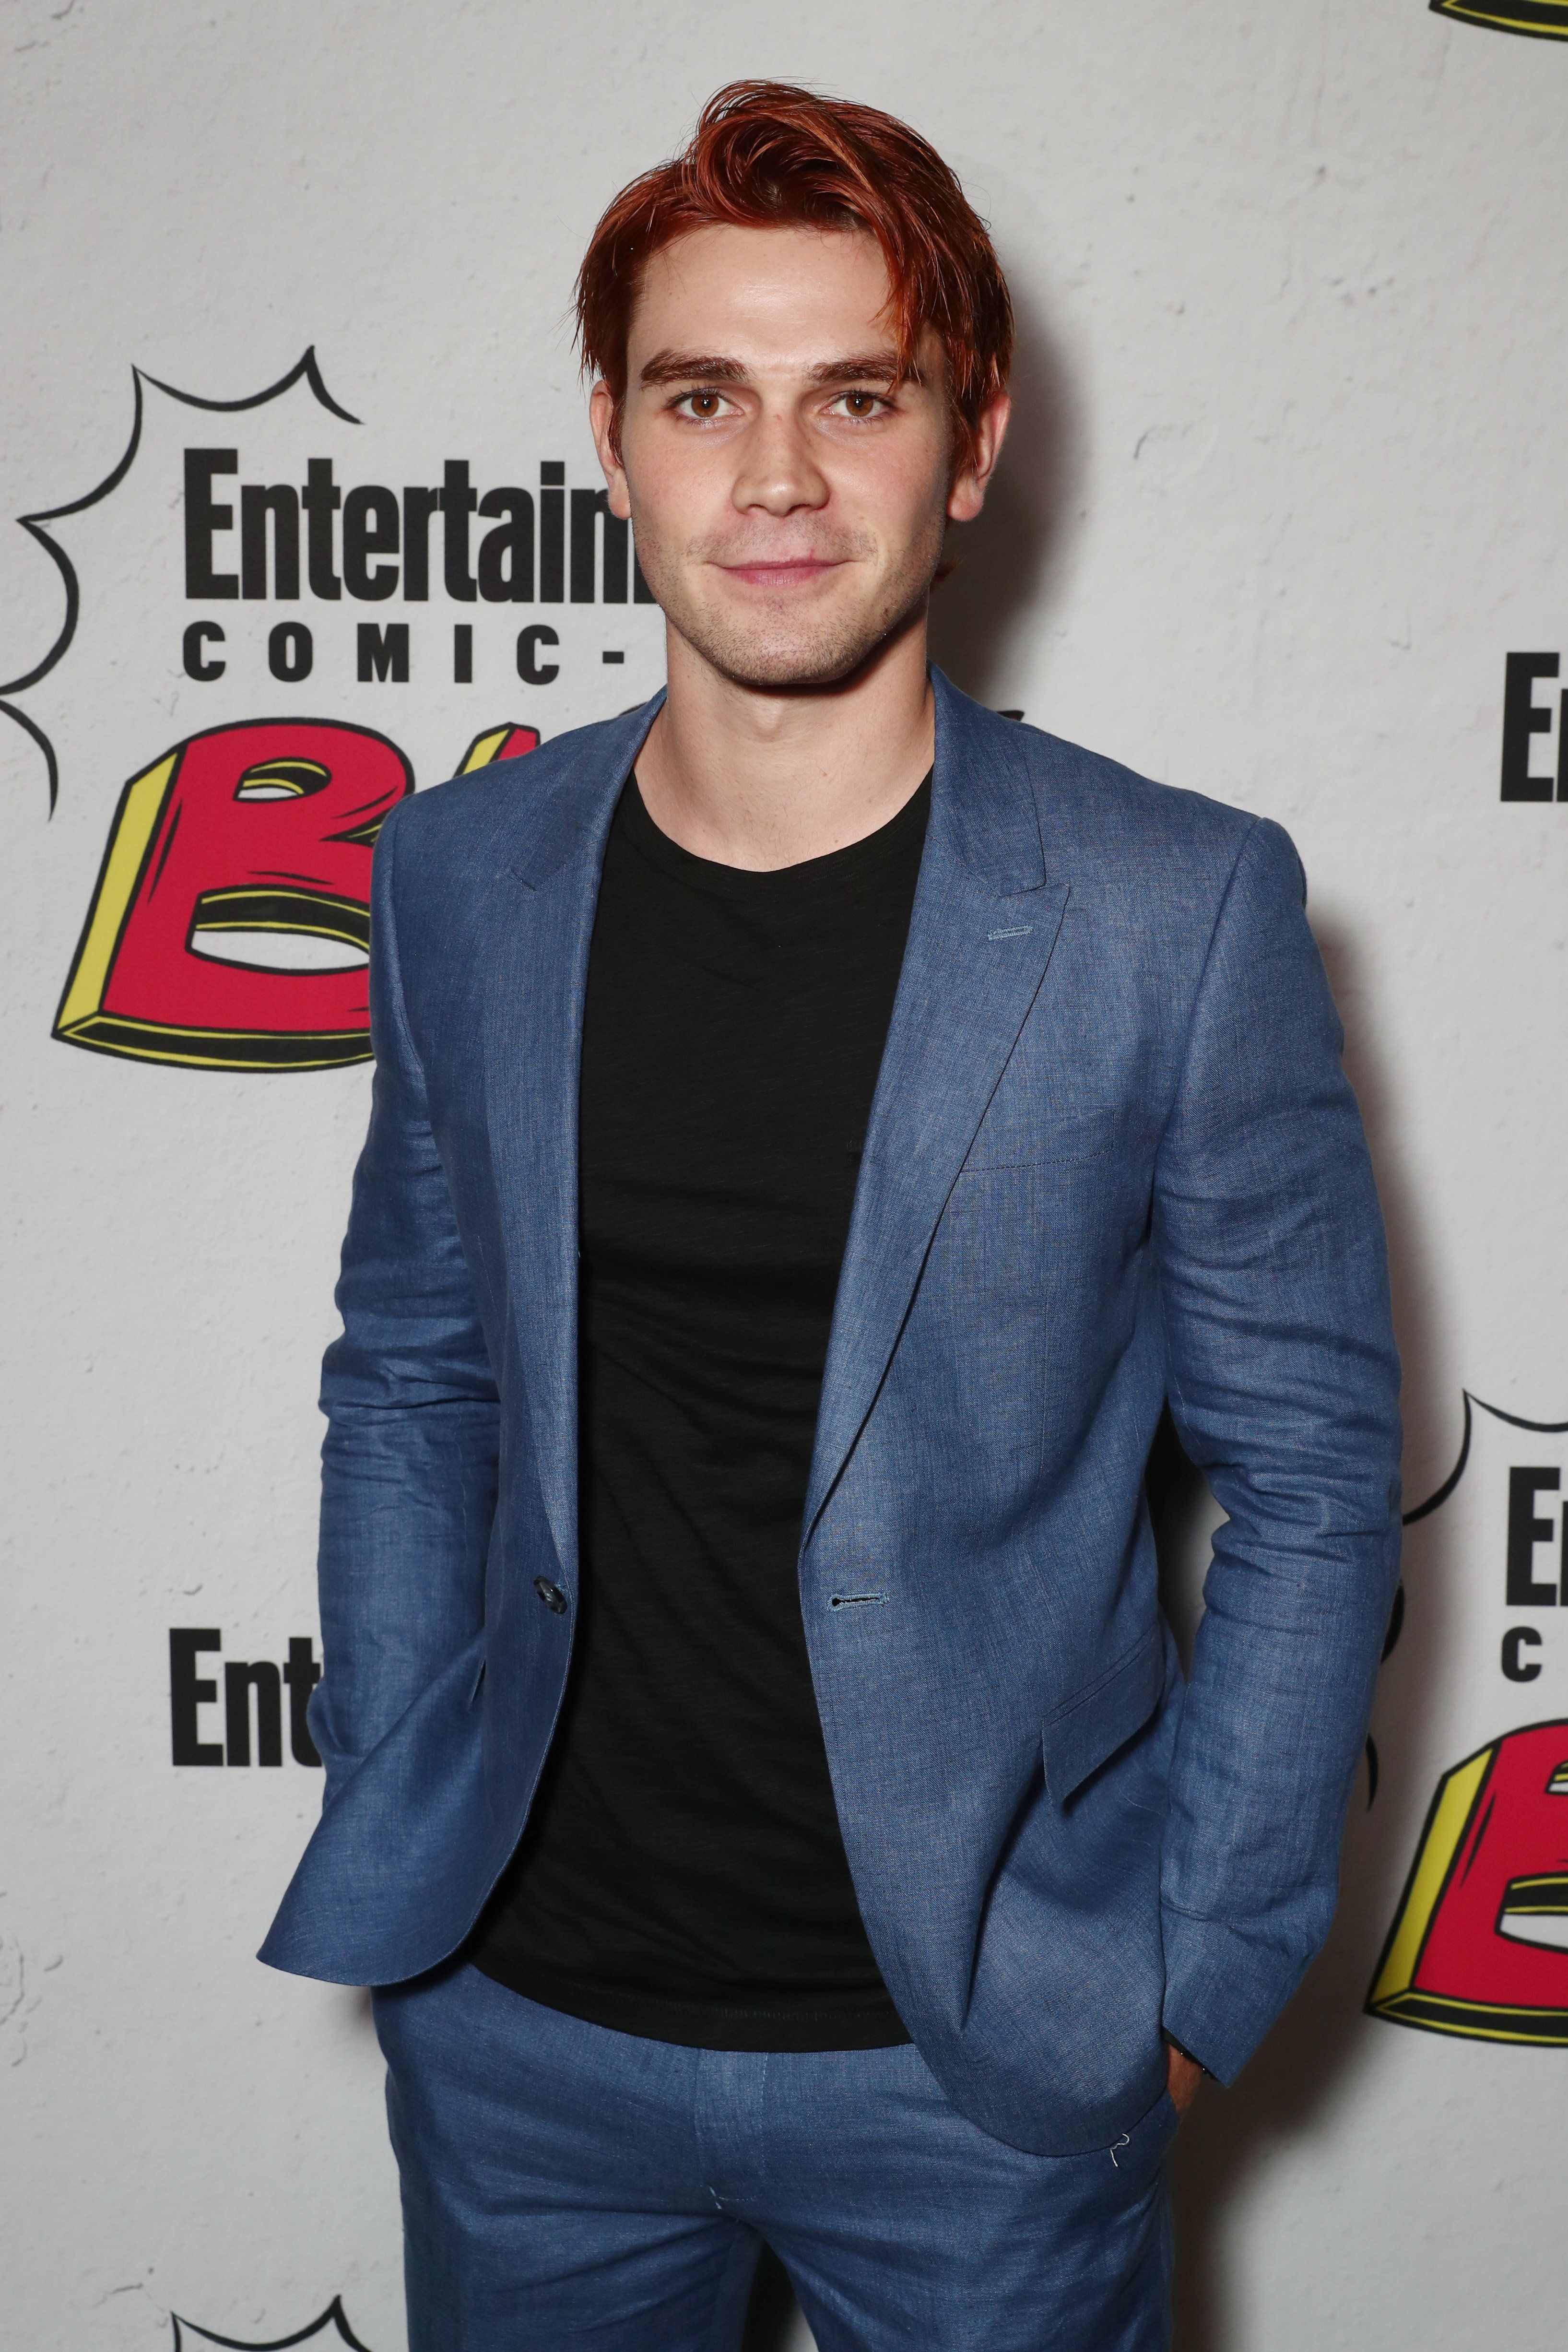 SAN DIEGO, CA - JULY 22:  K.J. Apa at Entertainment Weekly's annual Comic-Con party in celebration of Comic-Con 2017  at Float at Hard Rock Hotel San Diego on July 22, 2017 in San Diego, California.  (Photo by Todd Williamson/Getty Images for Entertainment Weekly)